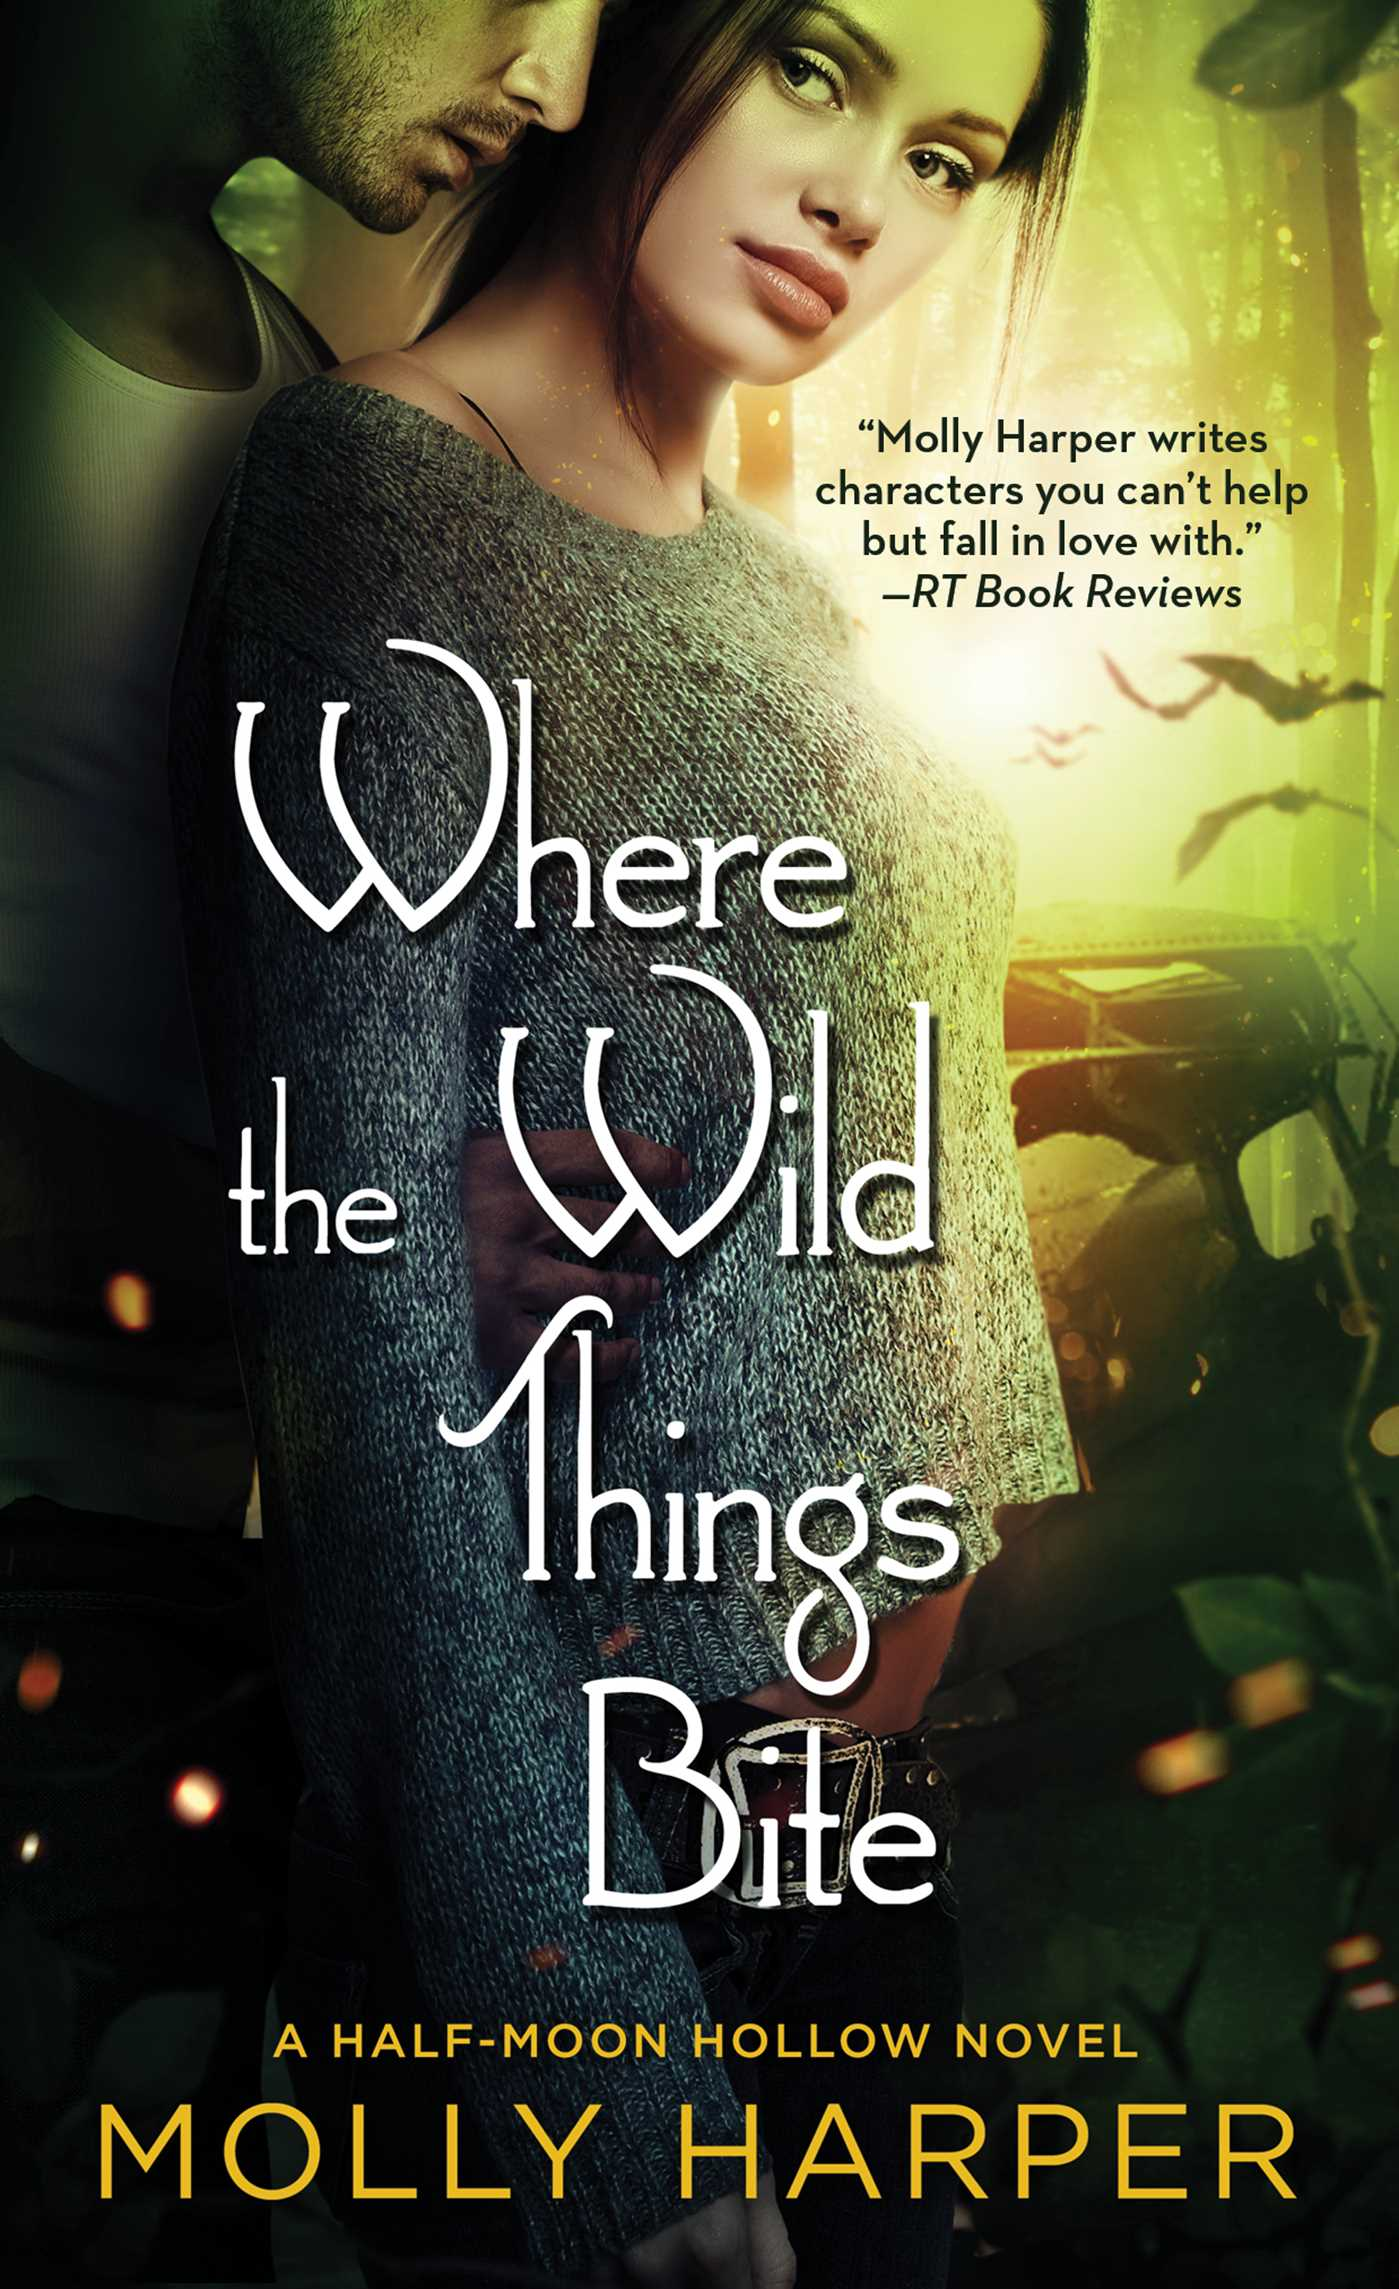 WHERE THE WILD THINGS ARE EBOOK EPUB